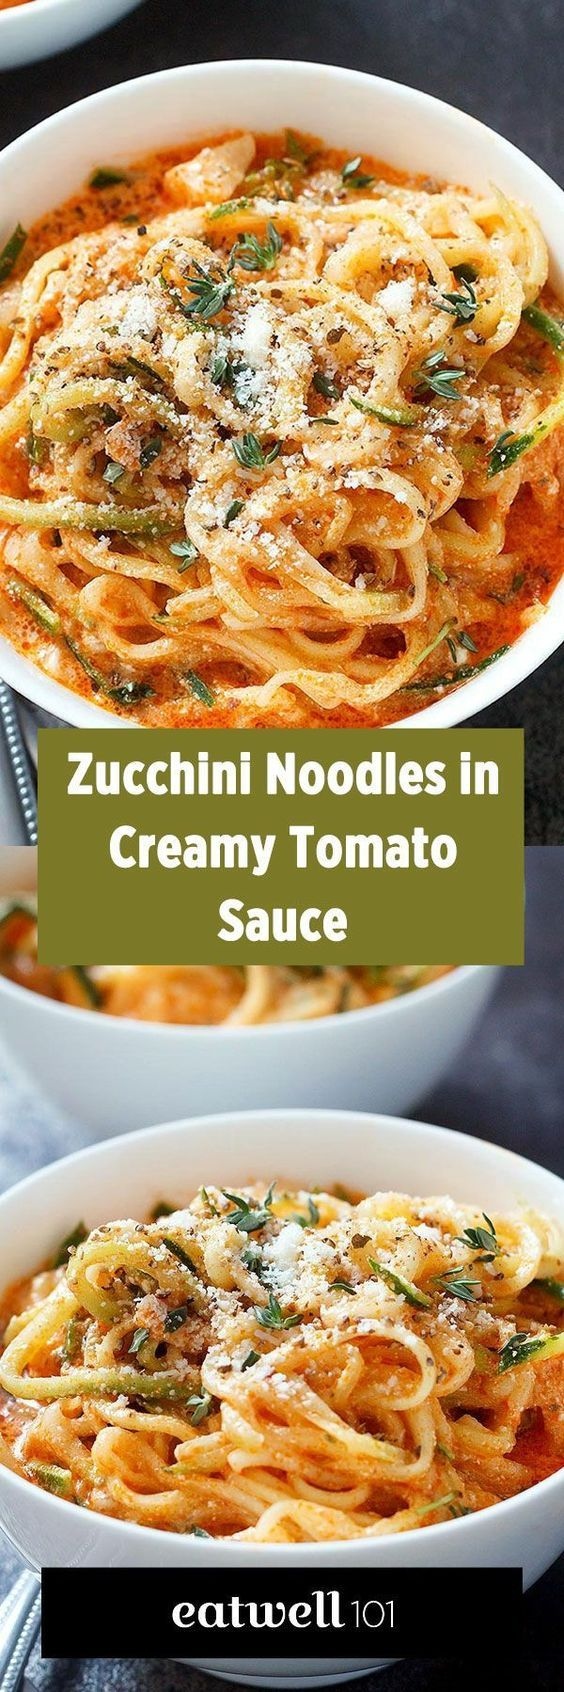 Try these zucchini noodles for a low carb comfort dinner that will be on your table in less than 20 minutes! Zucchini is quickly infused in a creamy tomato sauce flavored with onion and garlic. A g…